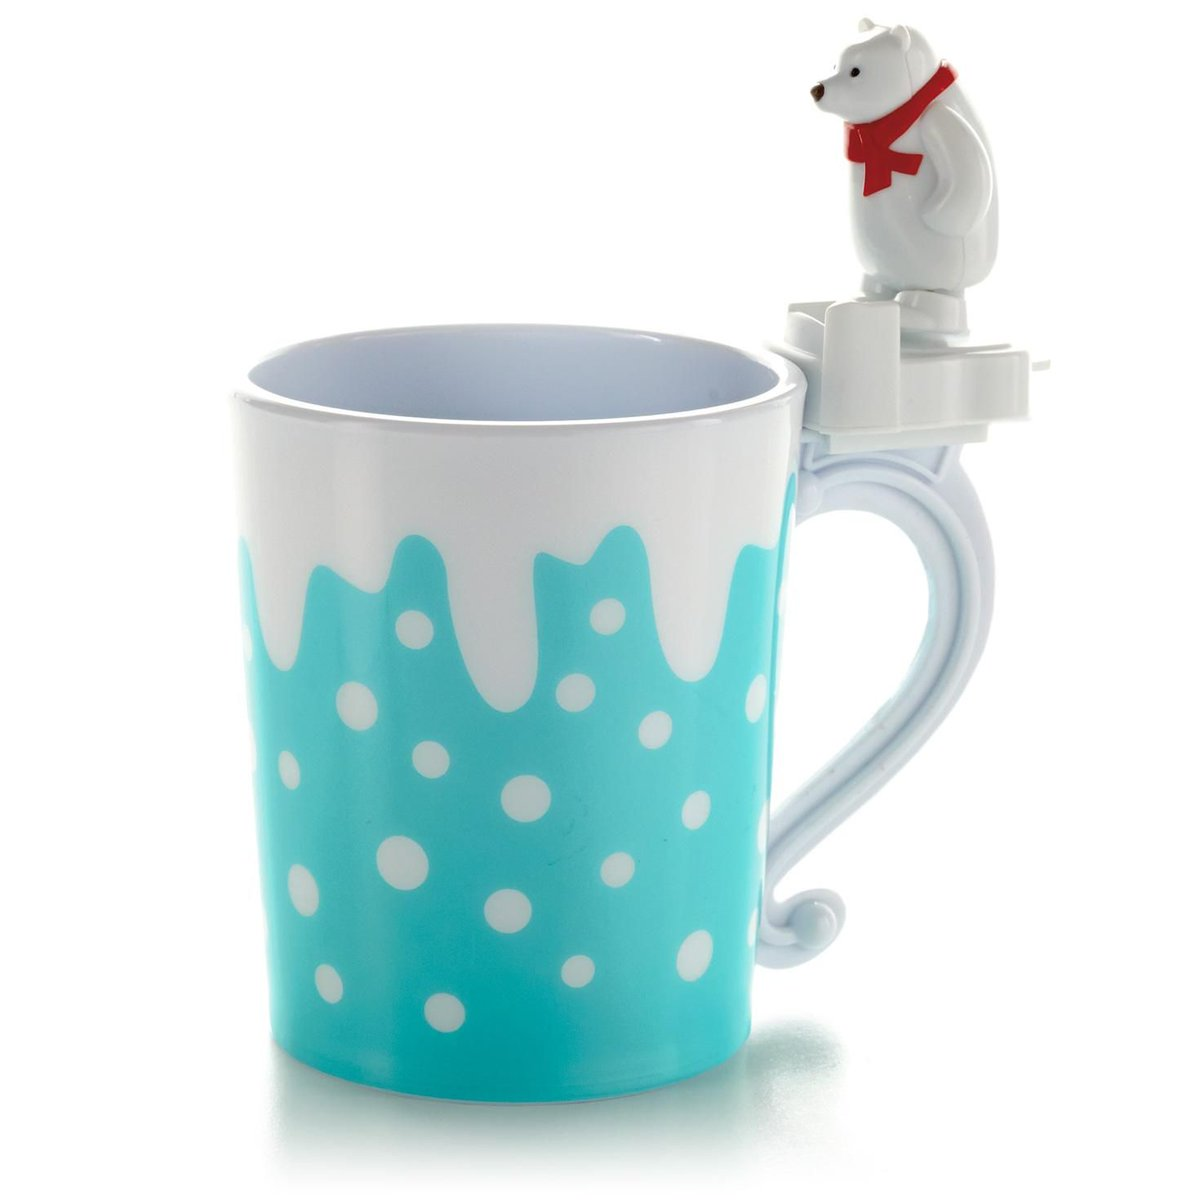 Marshmallow-kickin' polar bear? Yes, please! RT 4 chance to #win this #Northpole bear mug: http://t.co/vEp2rG4chF http://t.co/oaswPBxQCD